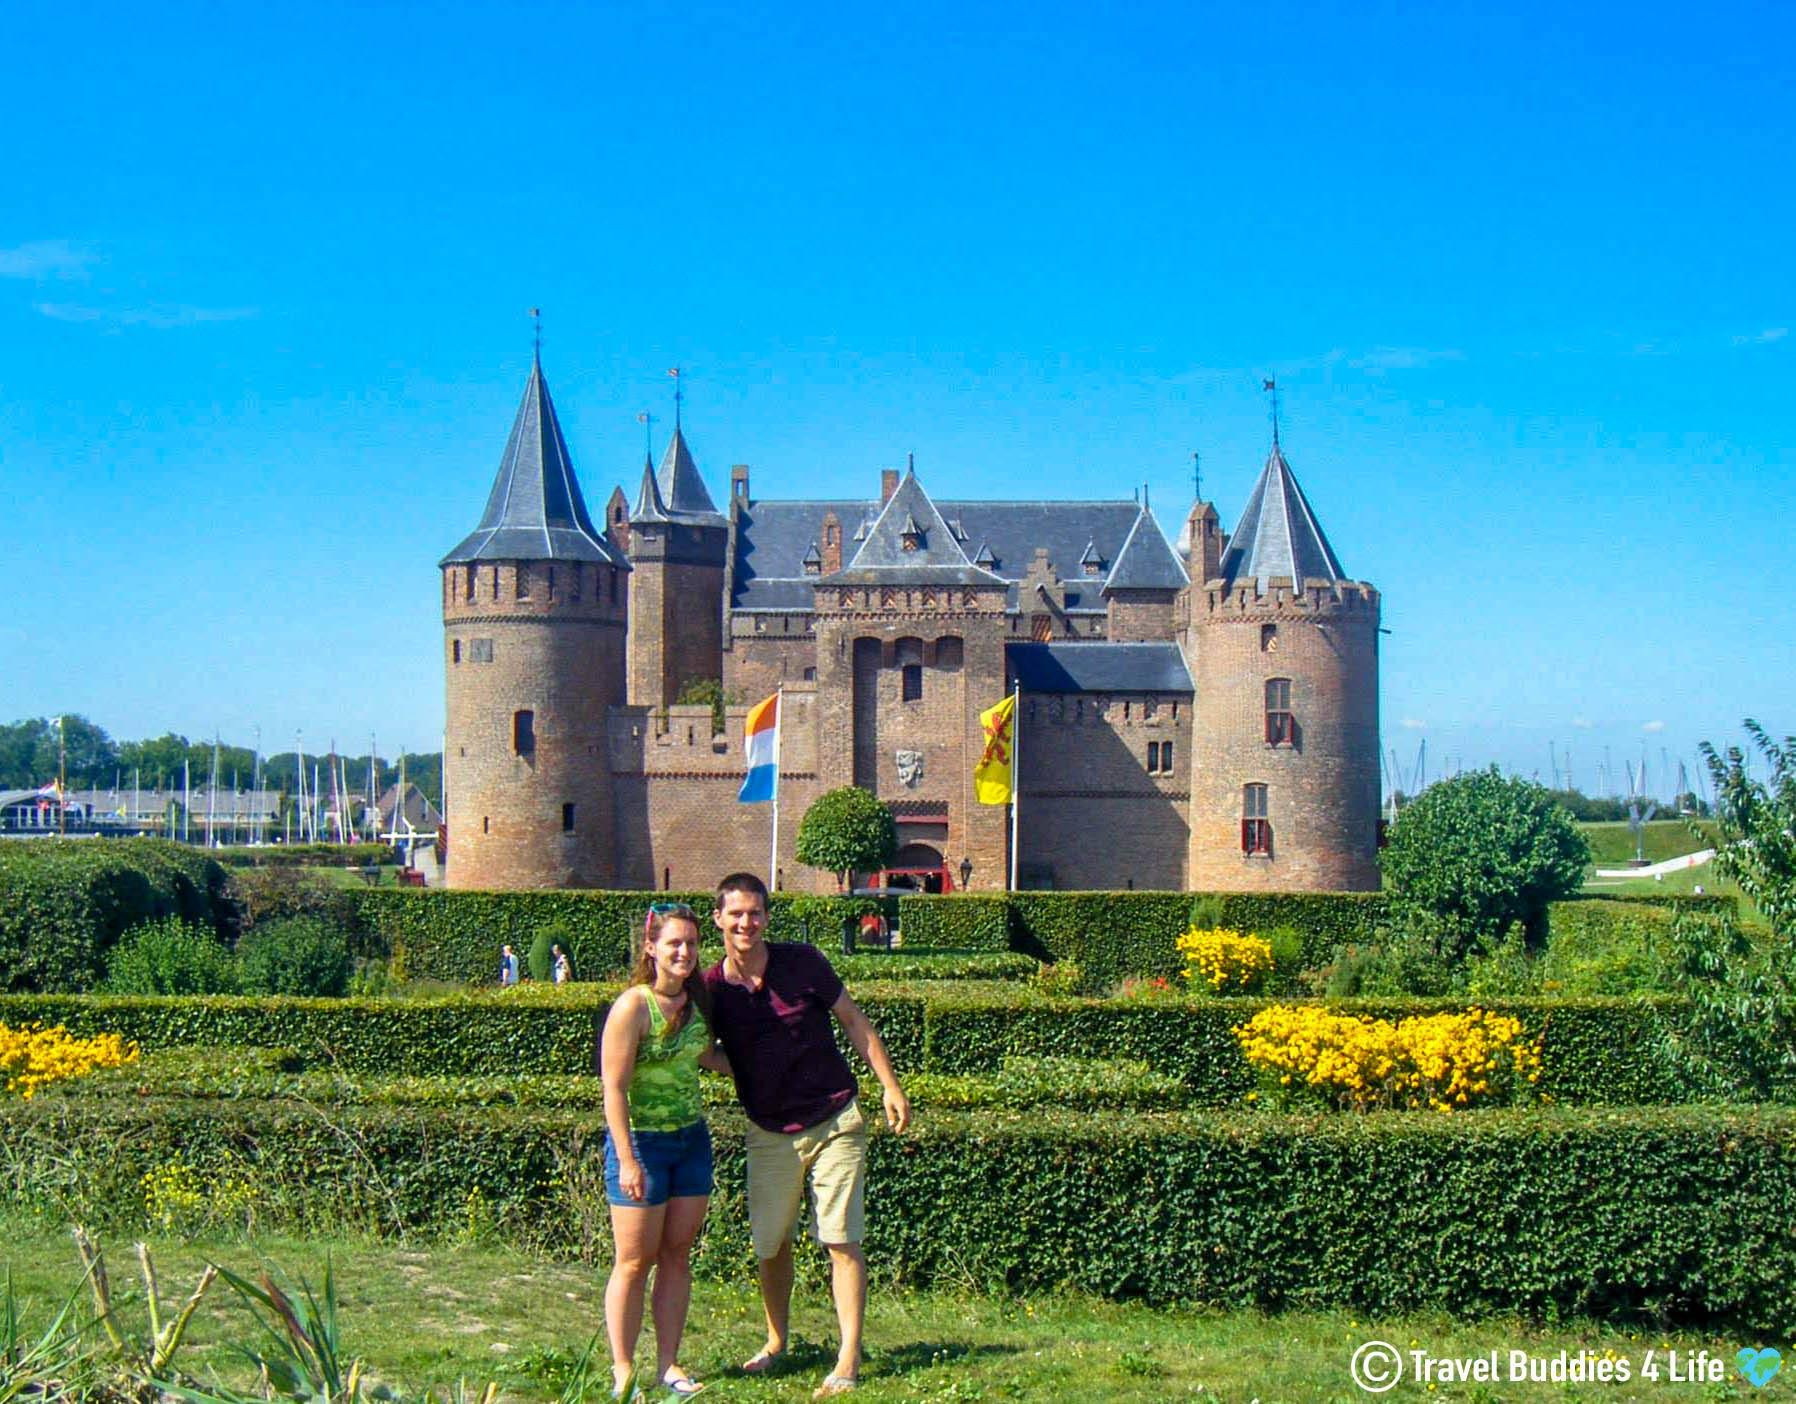 Ali And Joey In The Front Of The Muiderslot Castle, The Netherlands, Europe